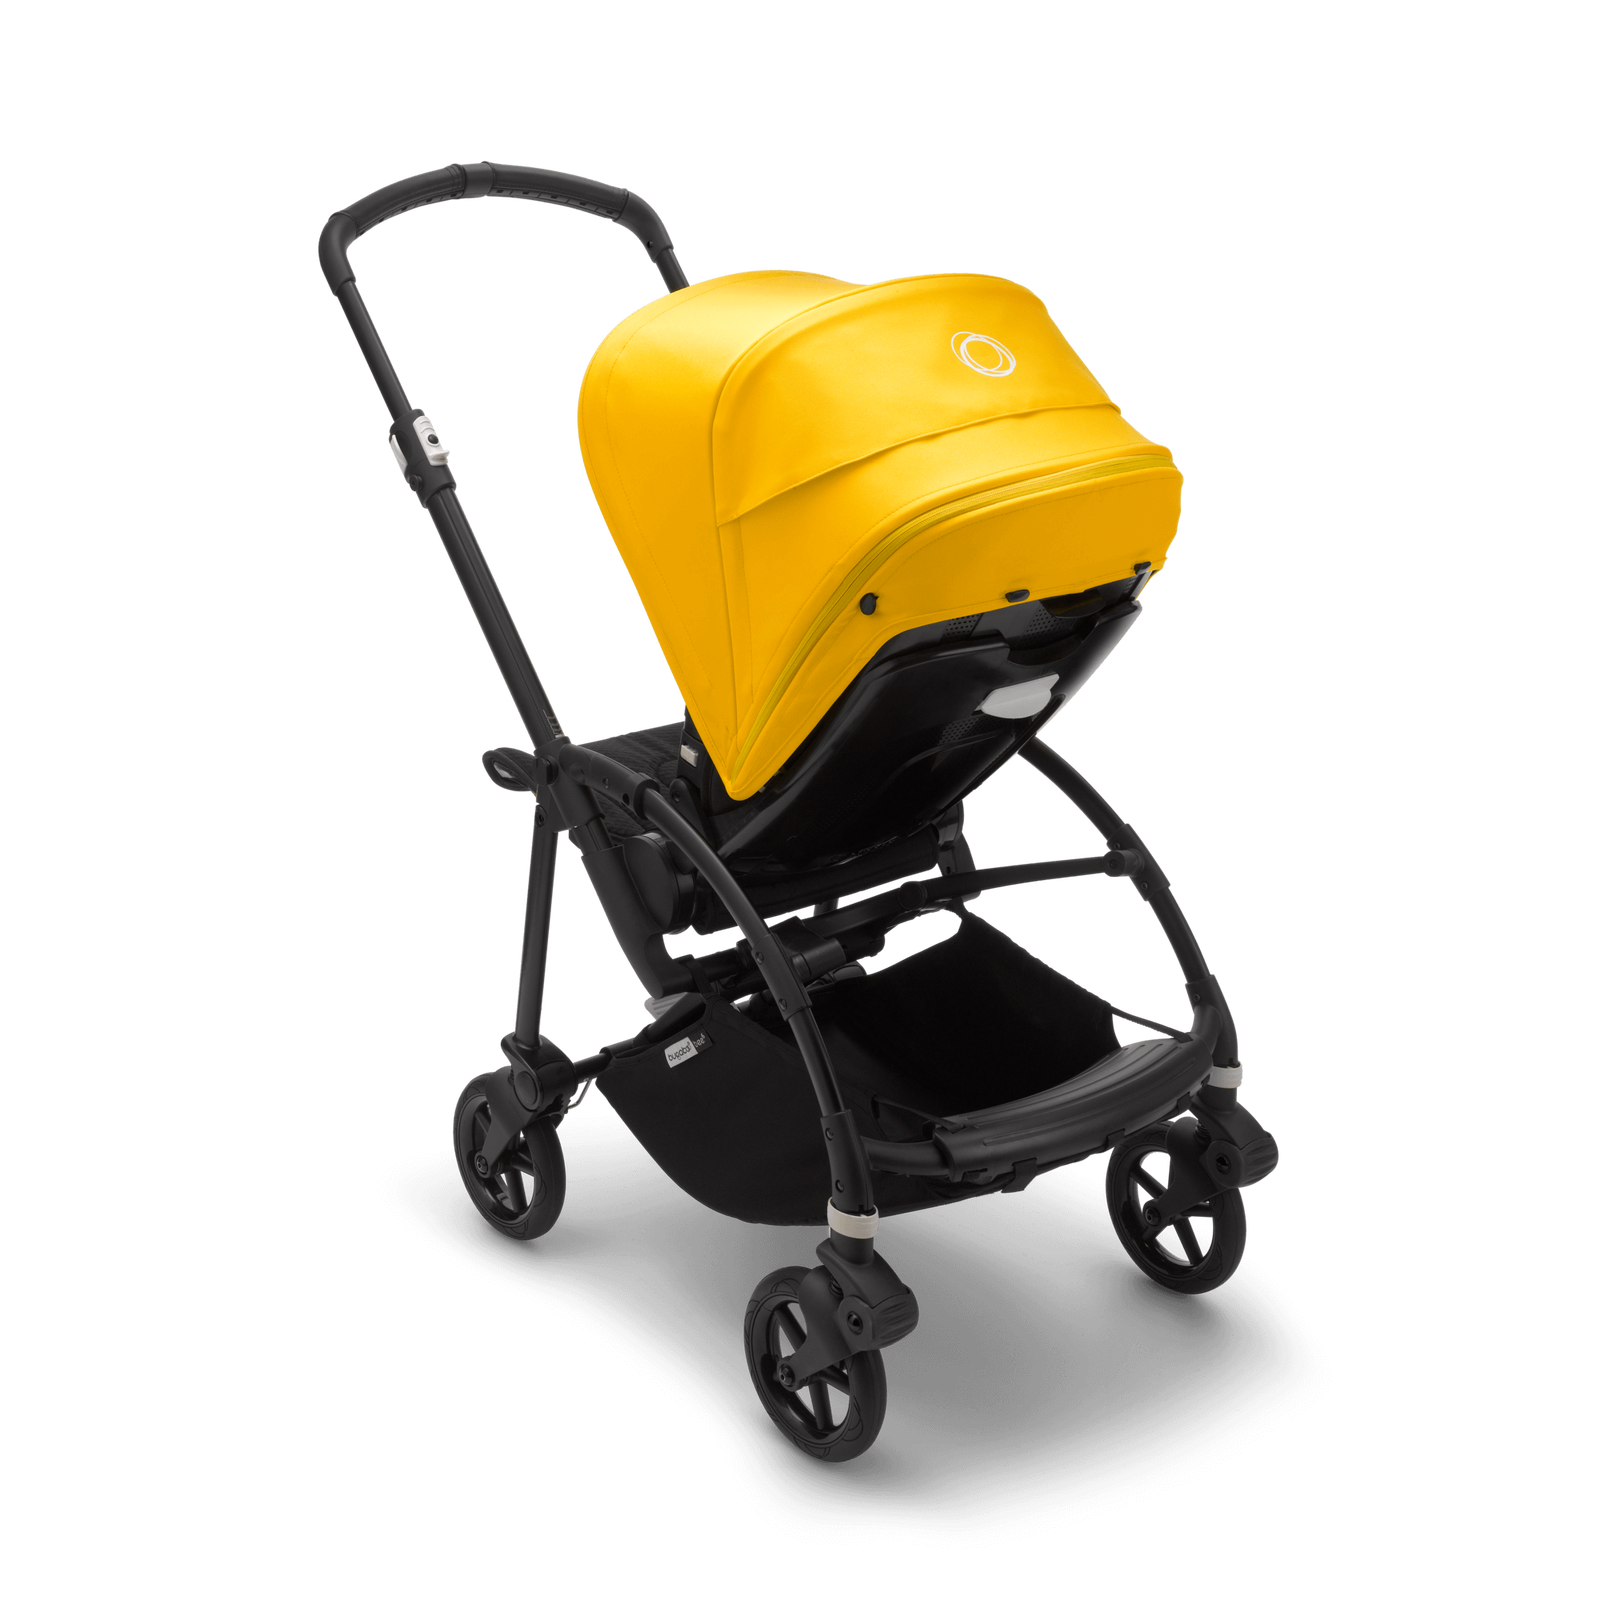 Bugaboo Bee 6 bassinet and seat stroller